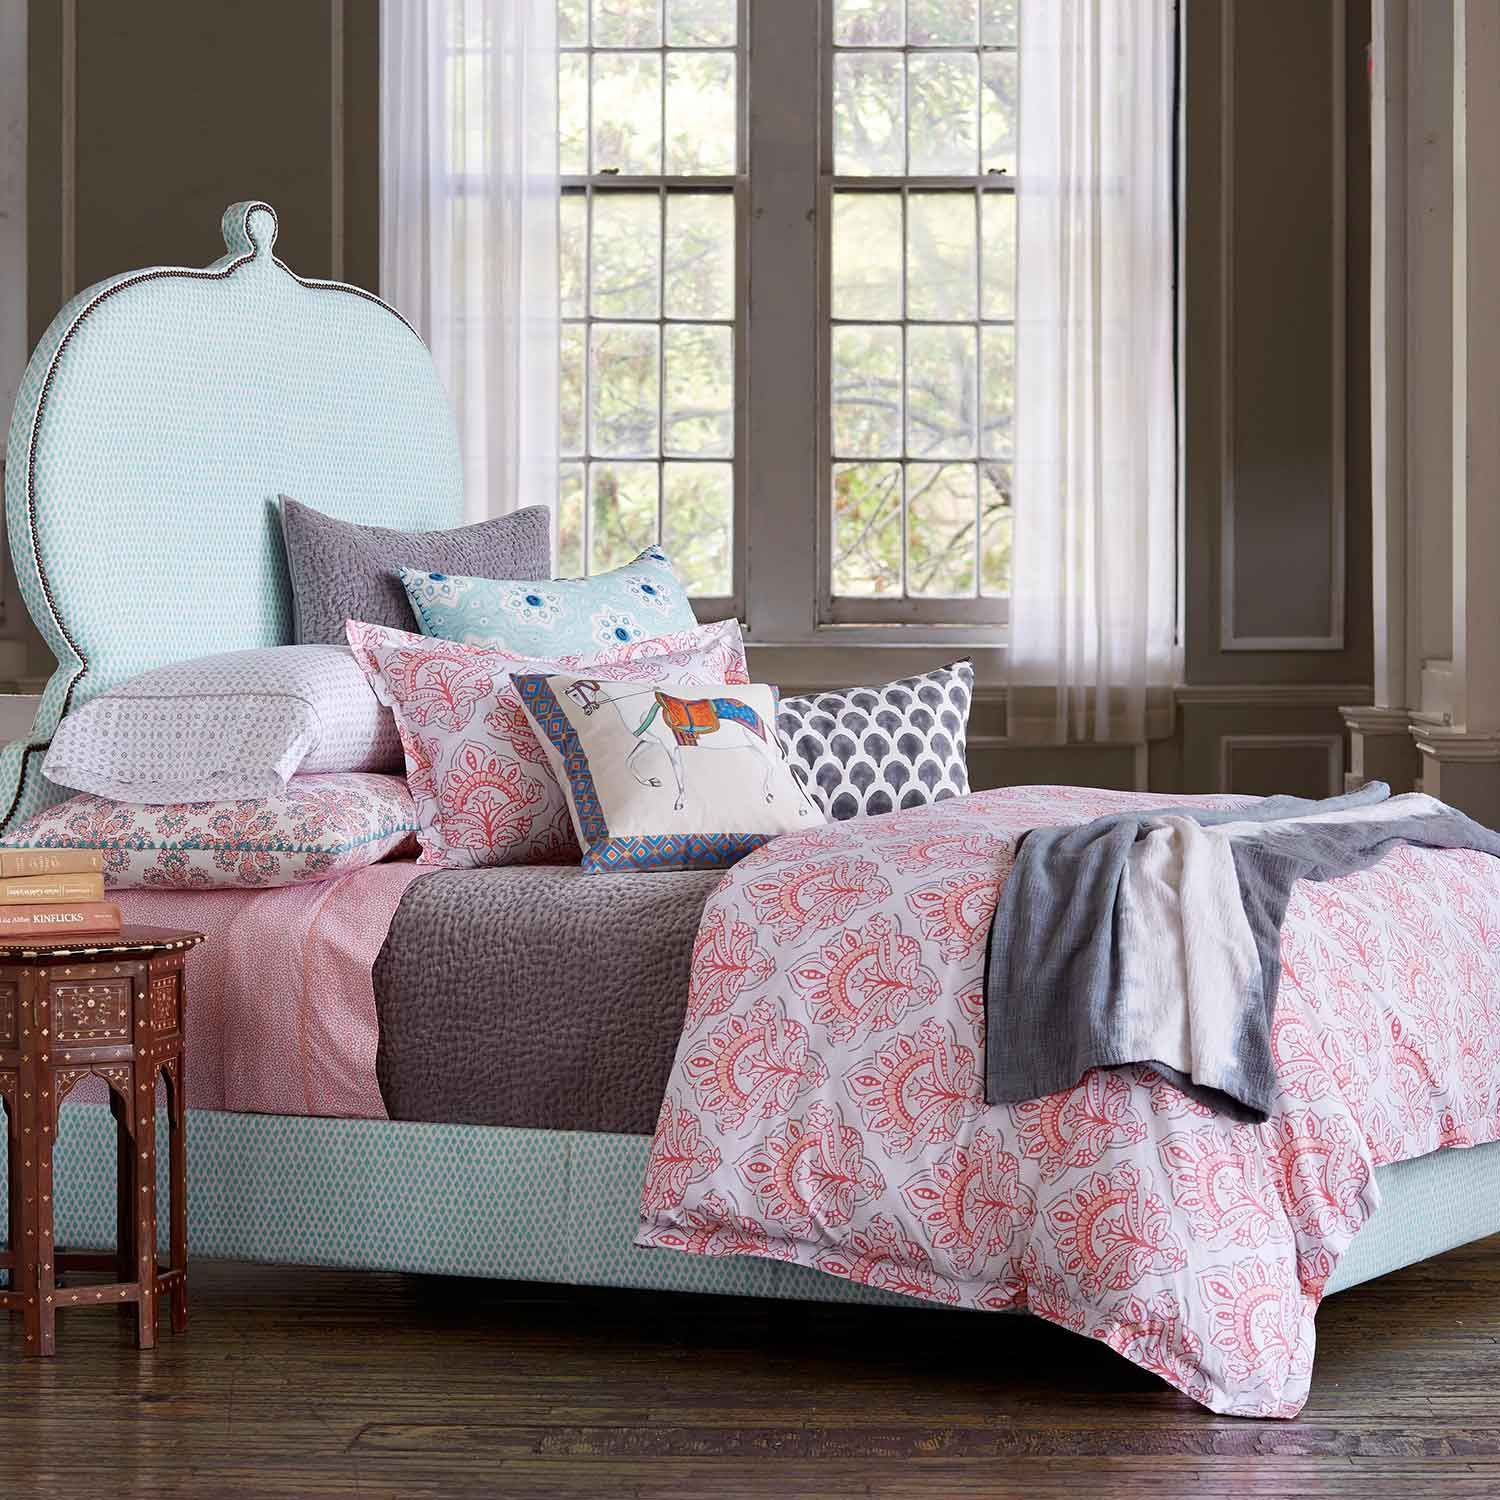 John Robshaw Textiles   Mahzar Bed Collection   Bed Collections   NEW  ARRIVALS